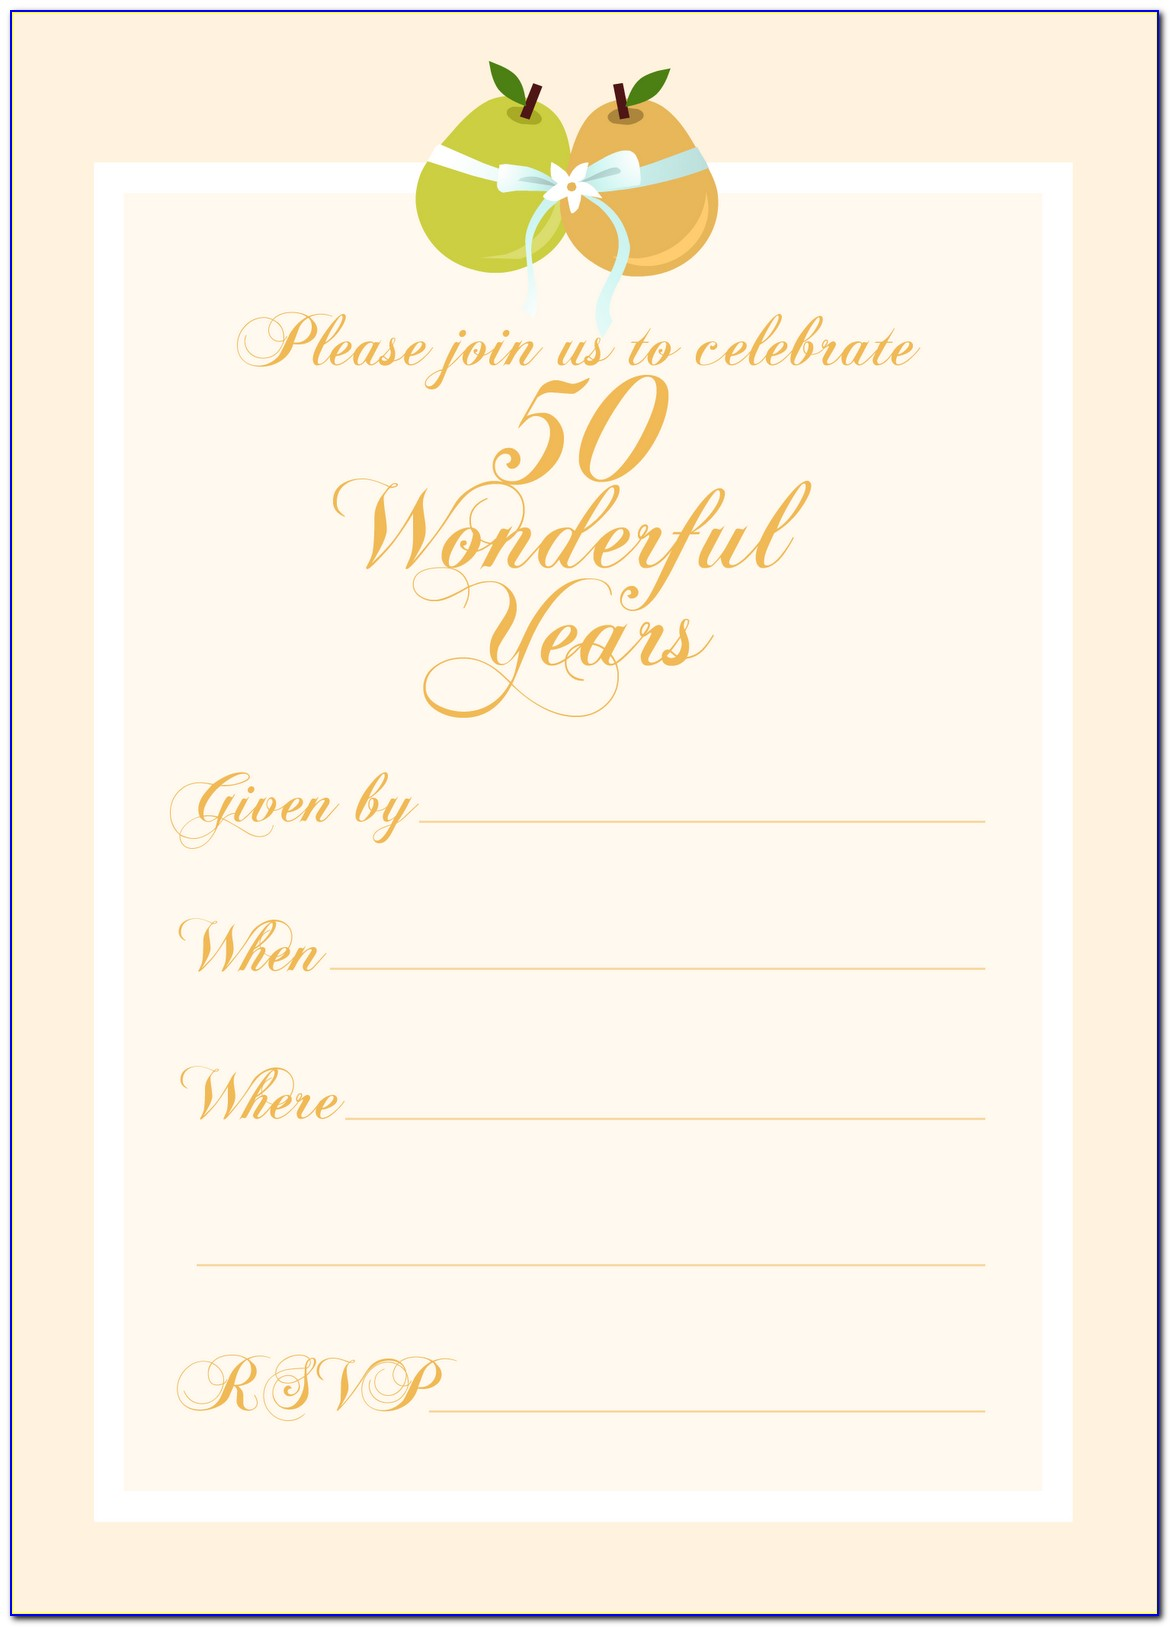 Free Printable Wedding Anniversary Invitation Templates